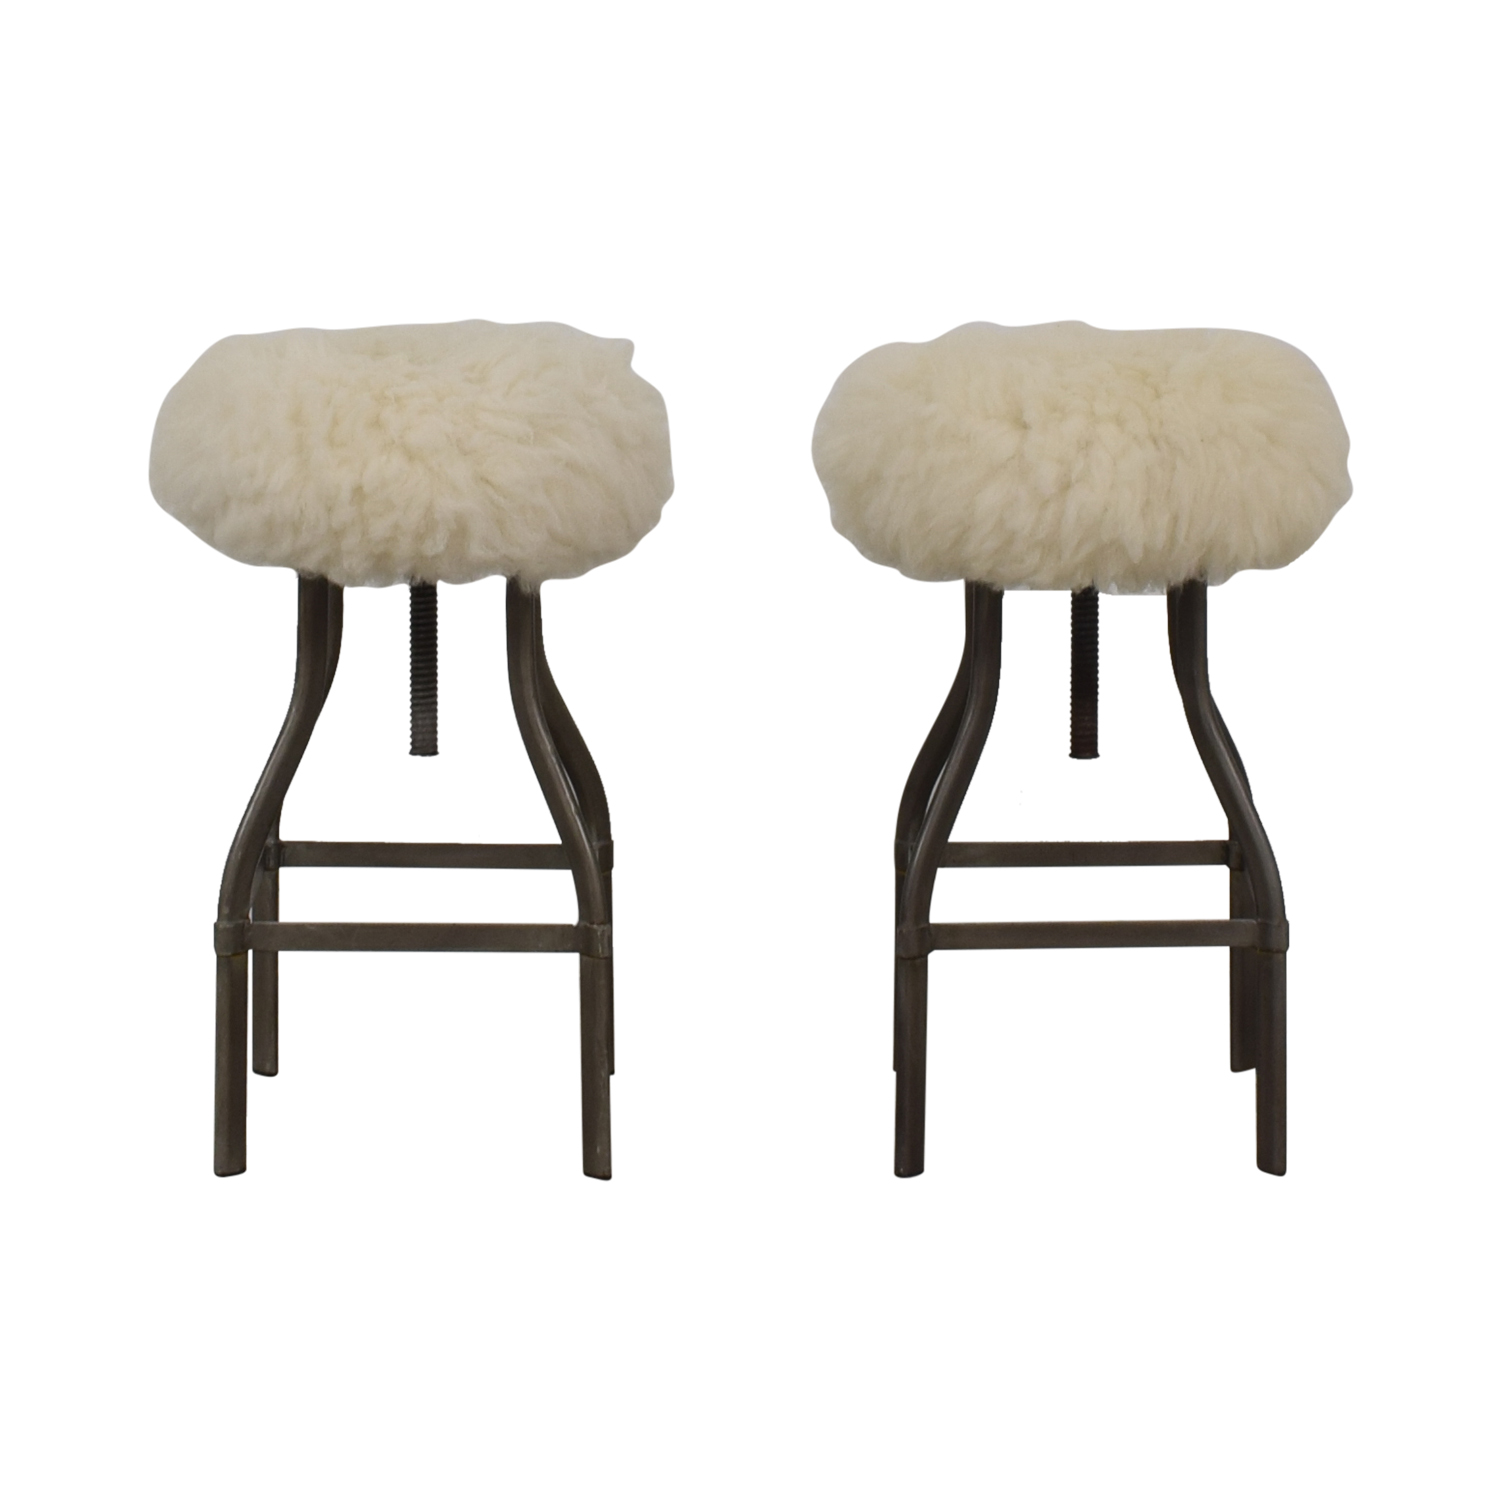 Crate & Barrel Turner Adjustable Counter Stools Crate & Barrel